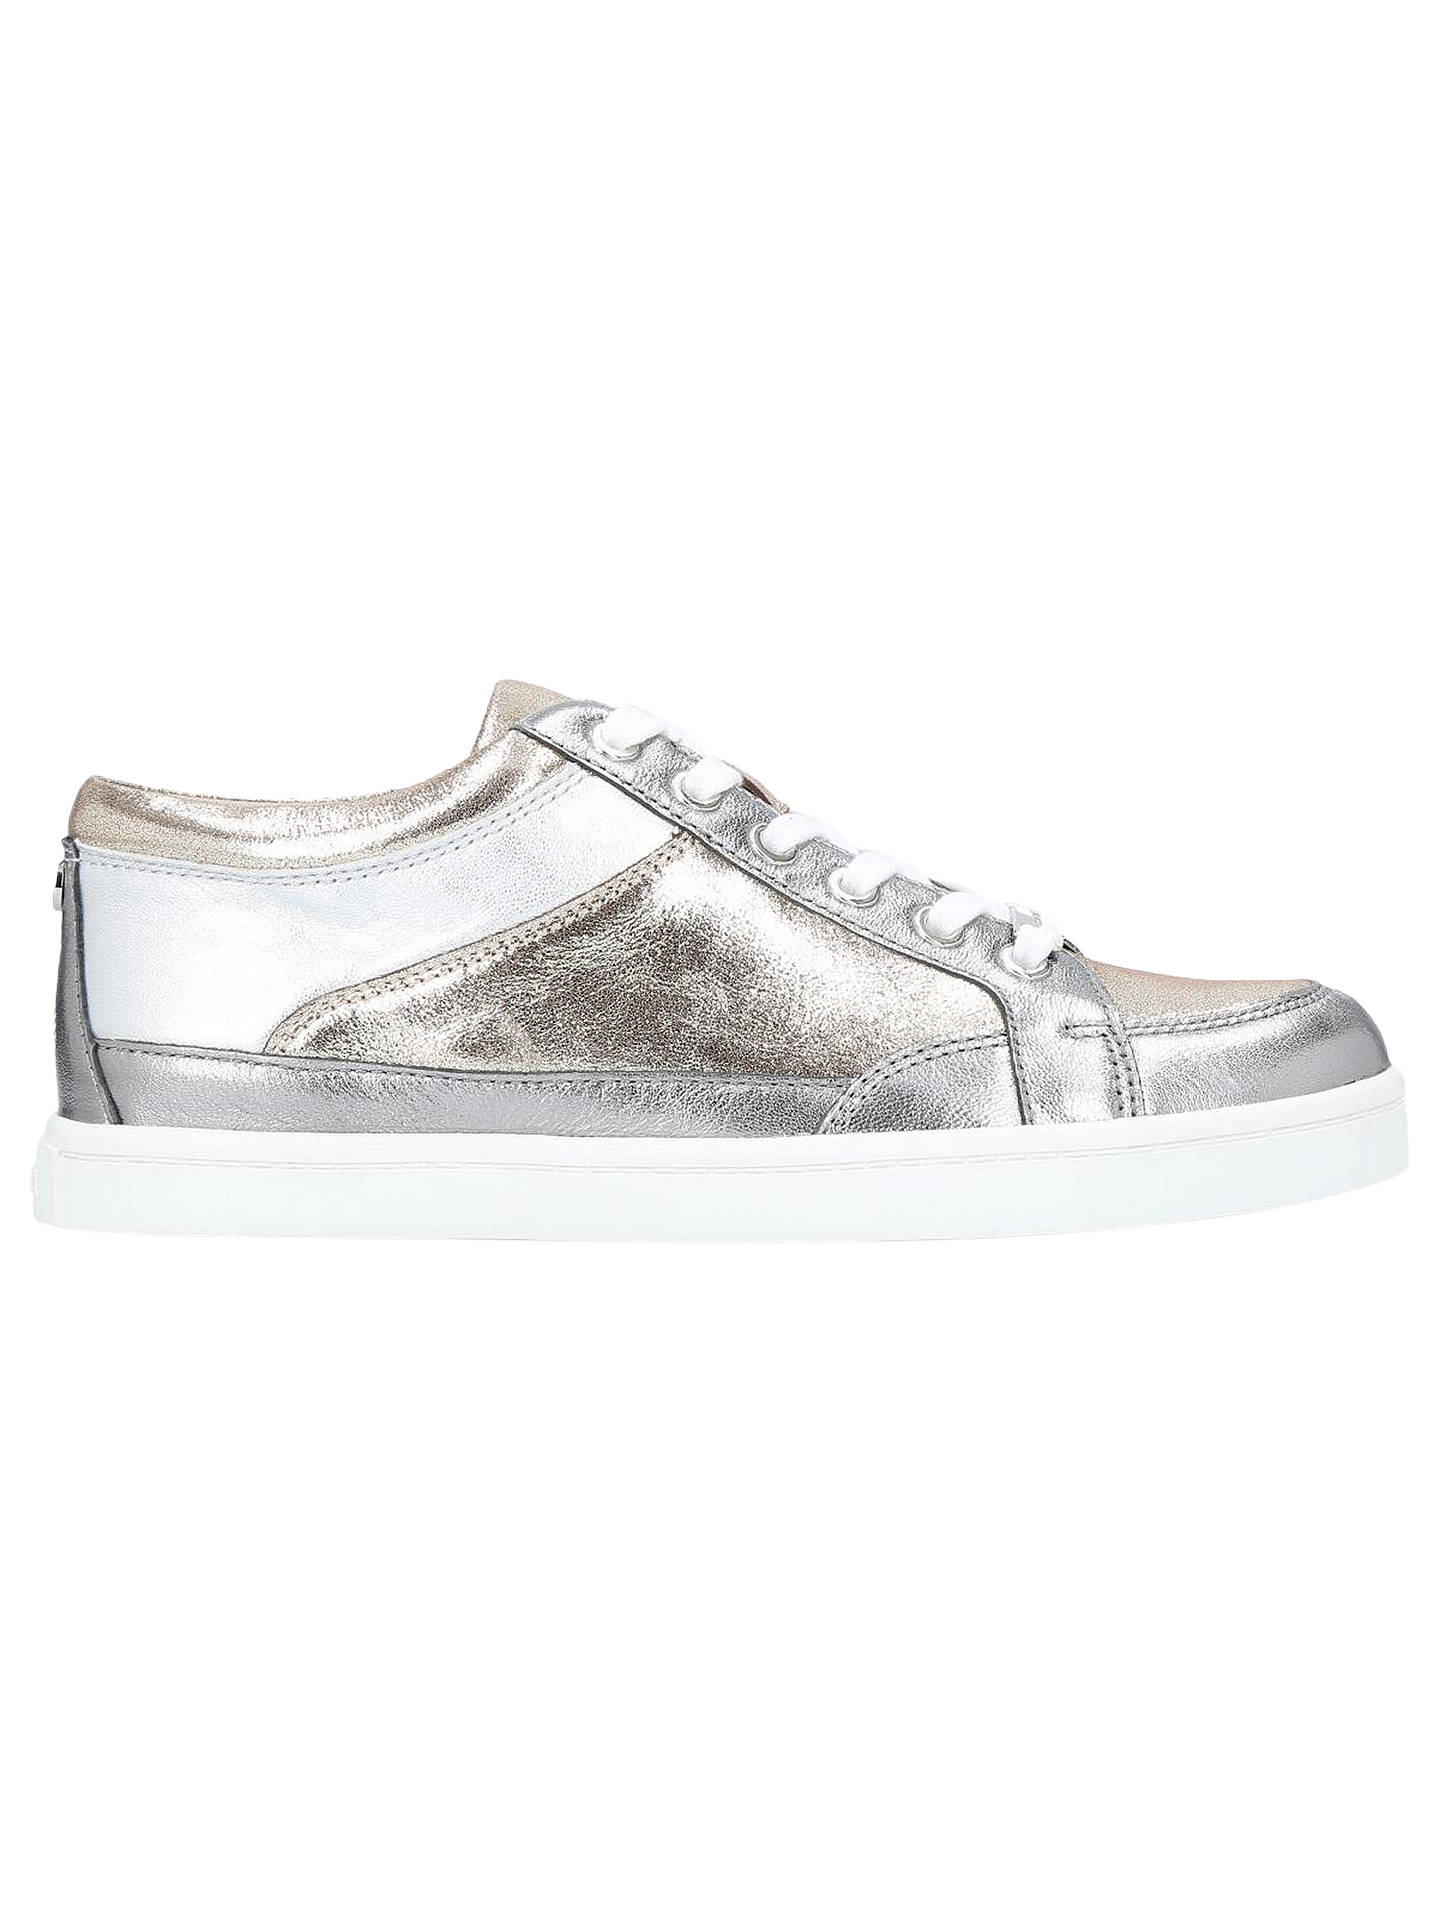 united kingdom run shoes nice cheap Carvela Legacy Lace-Up Trainers, Pewter at John Lewis & Partners